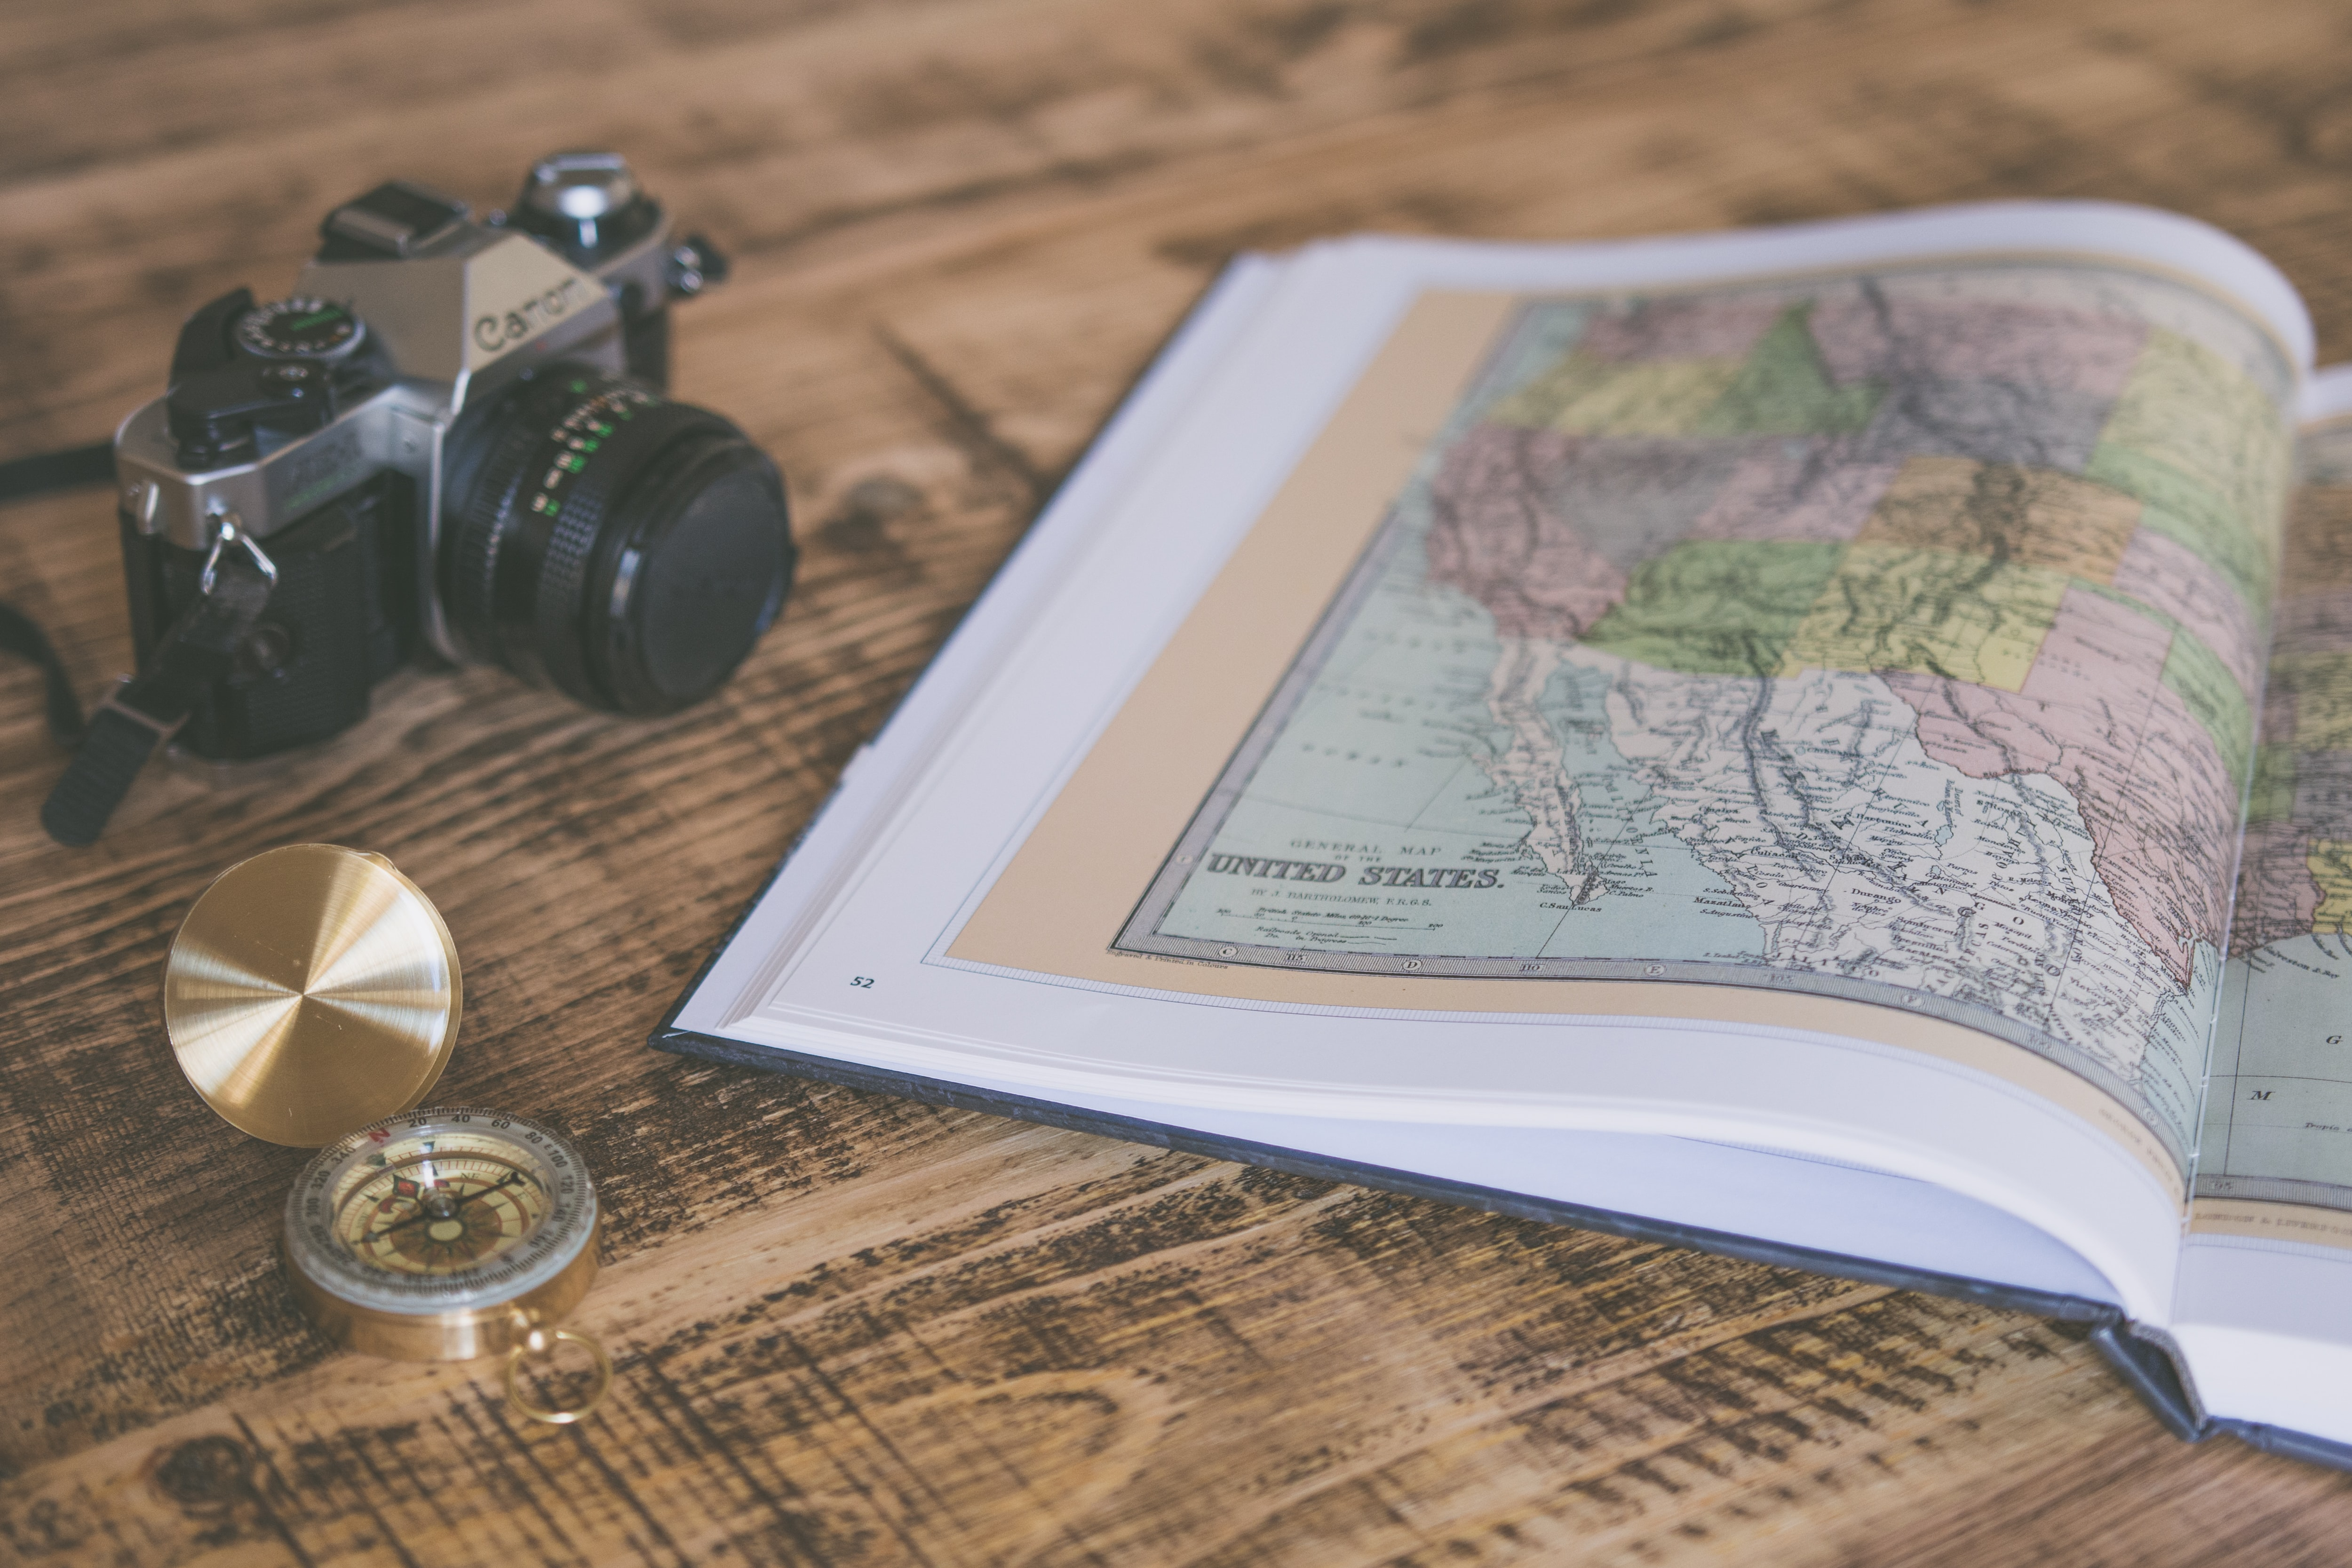 An open atlas with a map of the United States next to a camera and a compass on a wooden surface